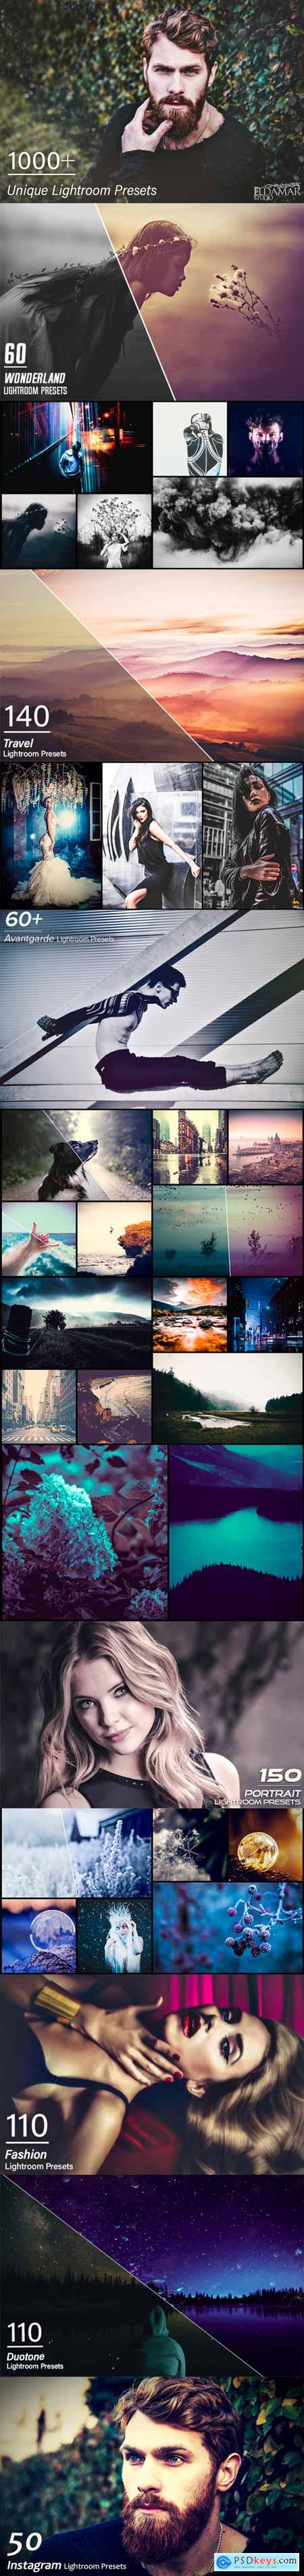 1000+ Unique Lightroom Presets 3062890